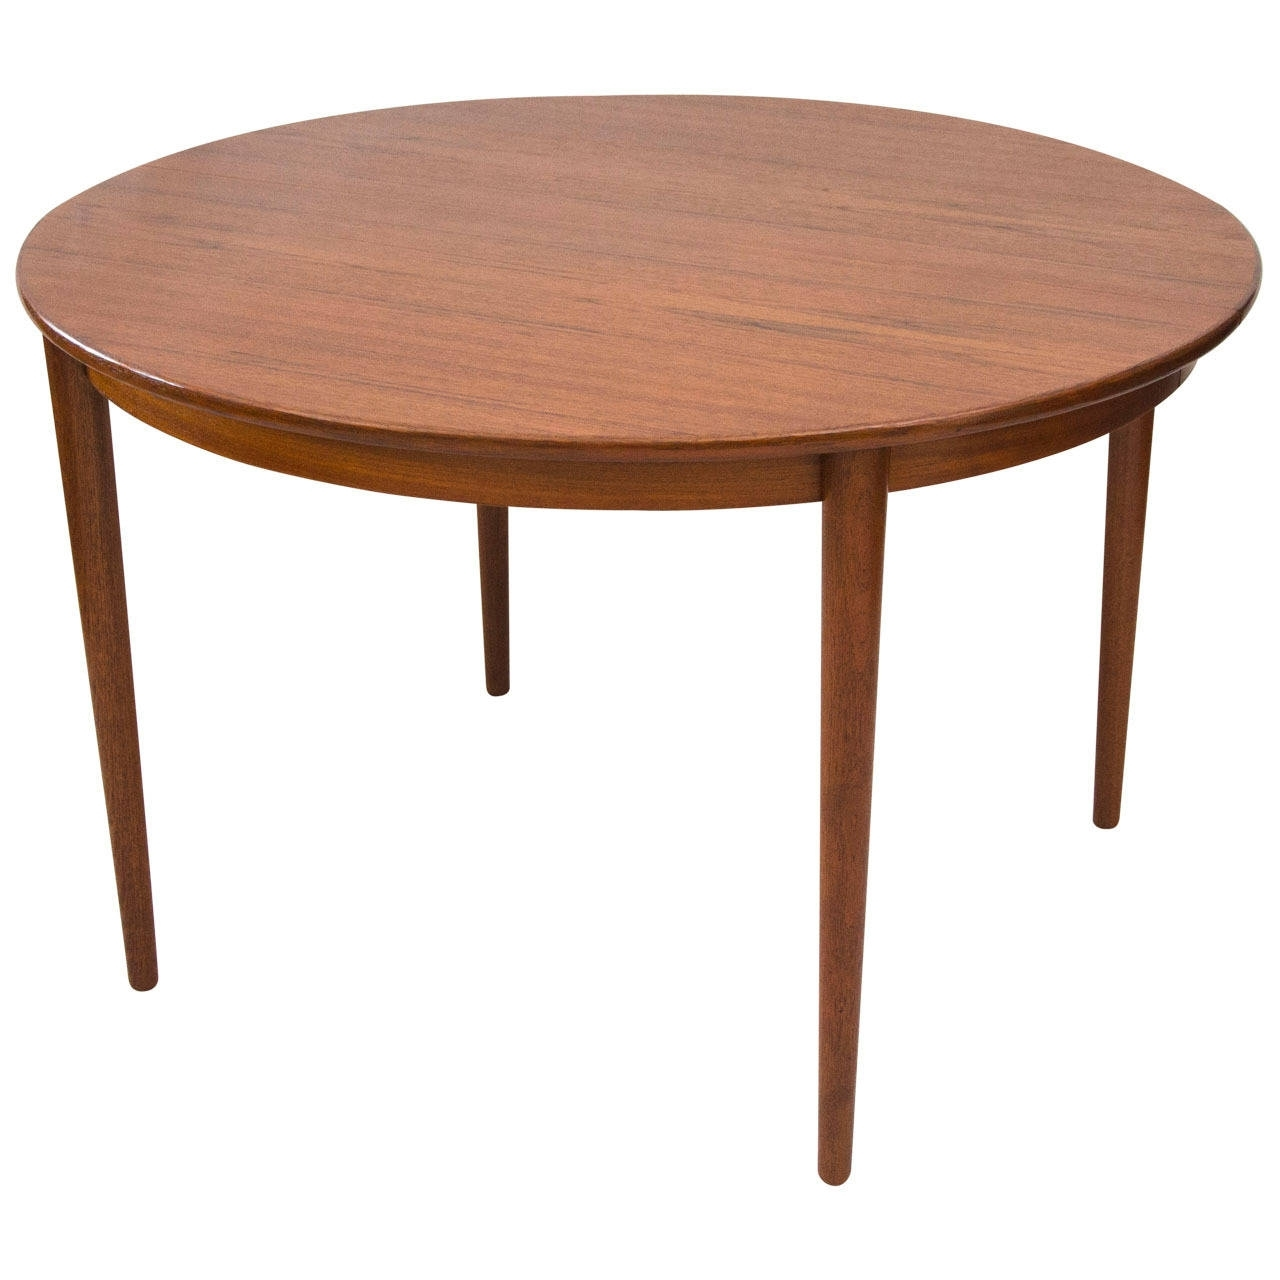 Danish Round Teak Dining Table With Two Leavesmoreddi At 1Stdibs Regarding Most Popular Round Teak Dining Tables (View 9 of 25)